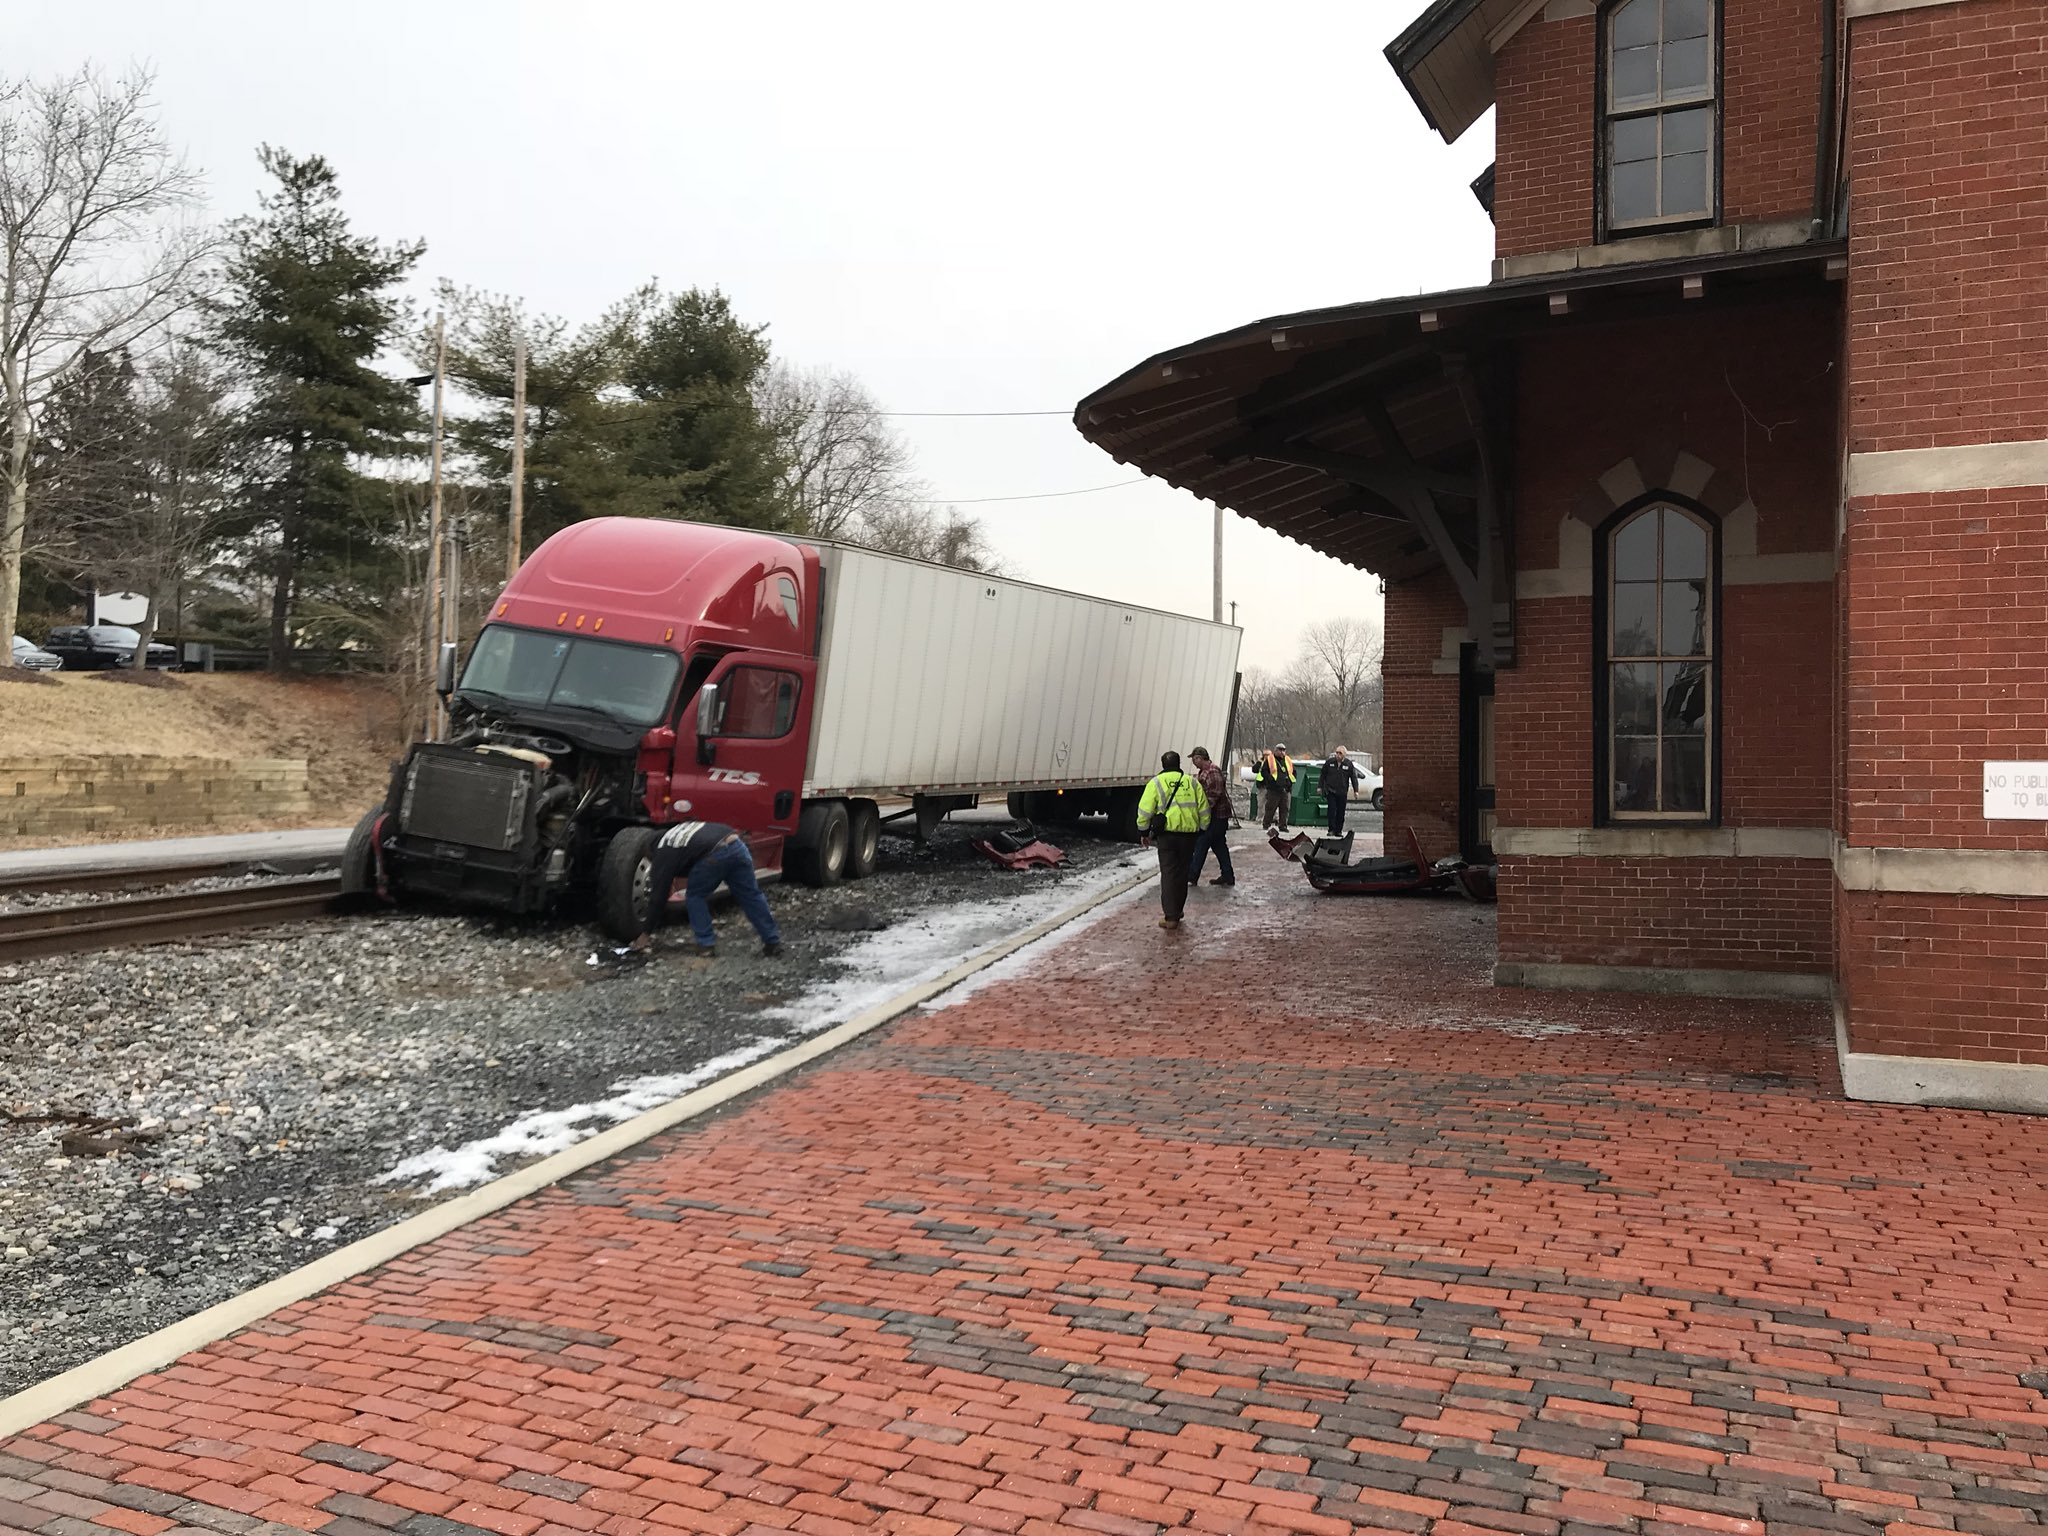 A semi-truck collided with a CSX train in Point of Rocks, Md.{&amp;nbsp;} Friday, Feb. 9, 2018 (Kevin Lewis/ABC7){&amp;nbsp;}<p></p>